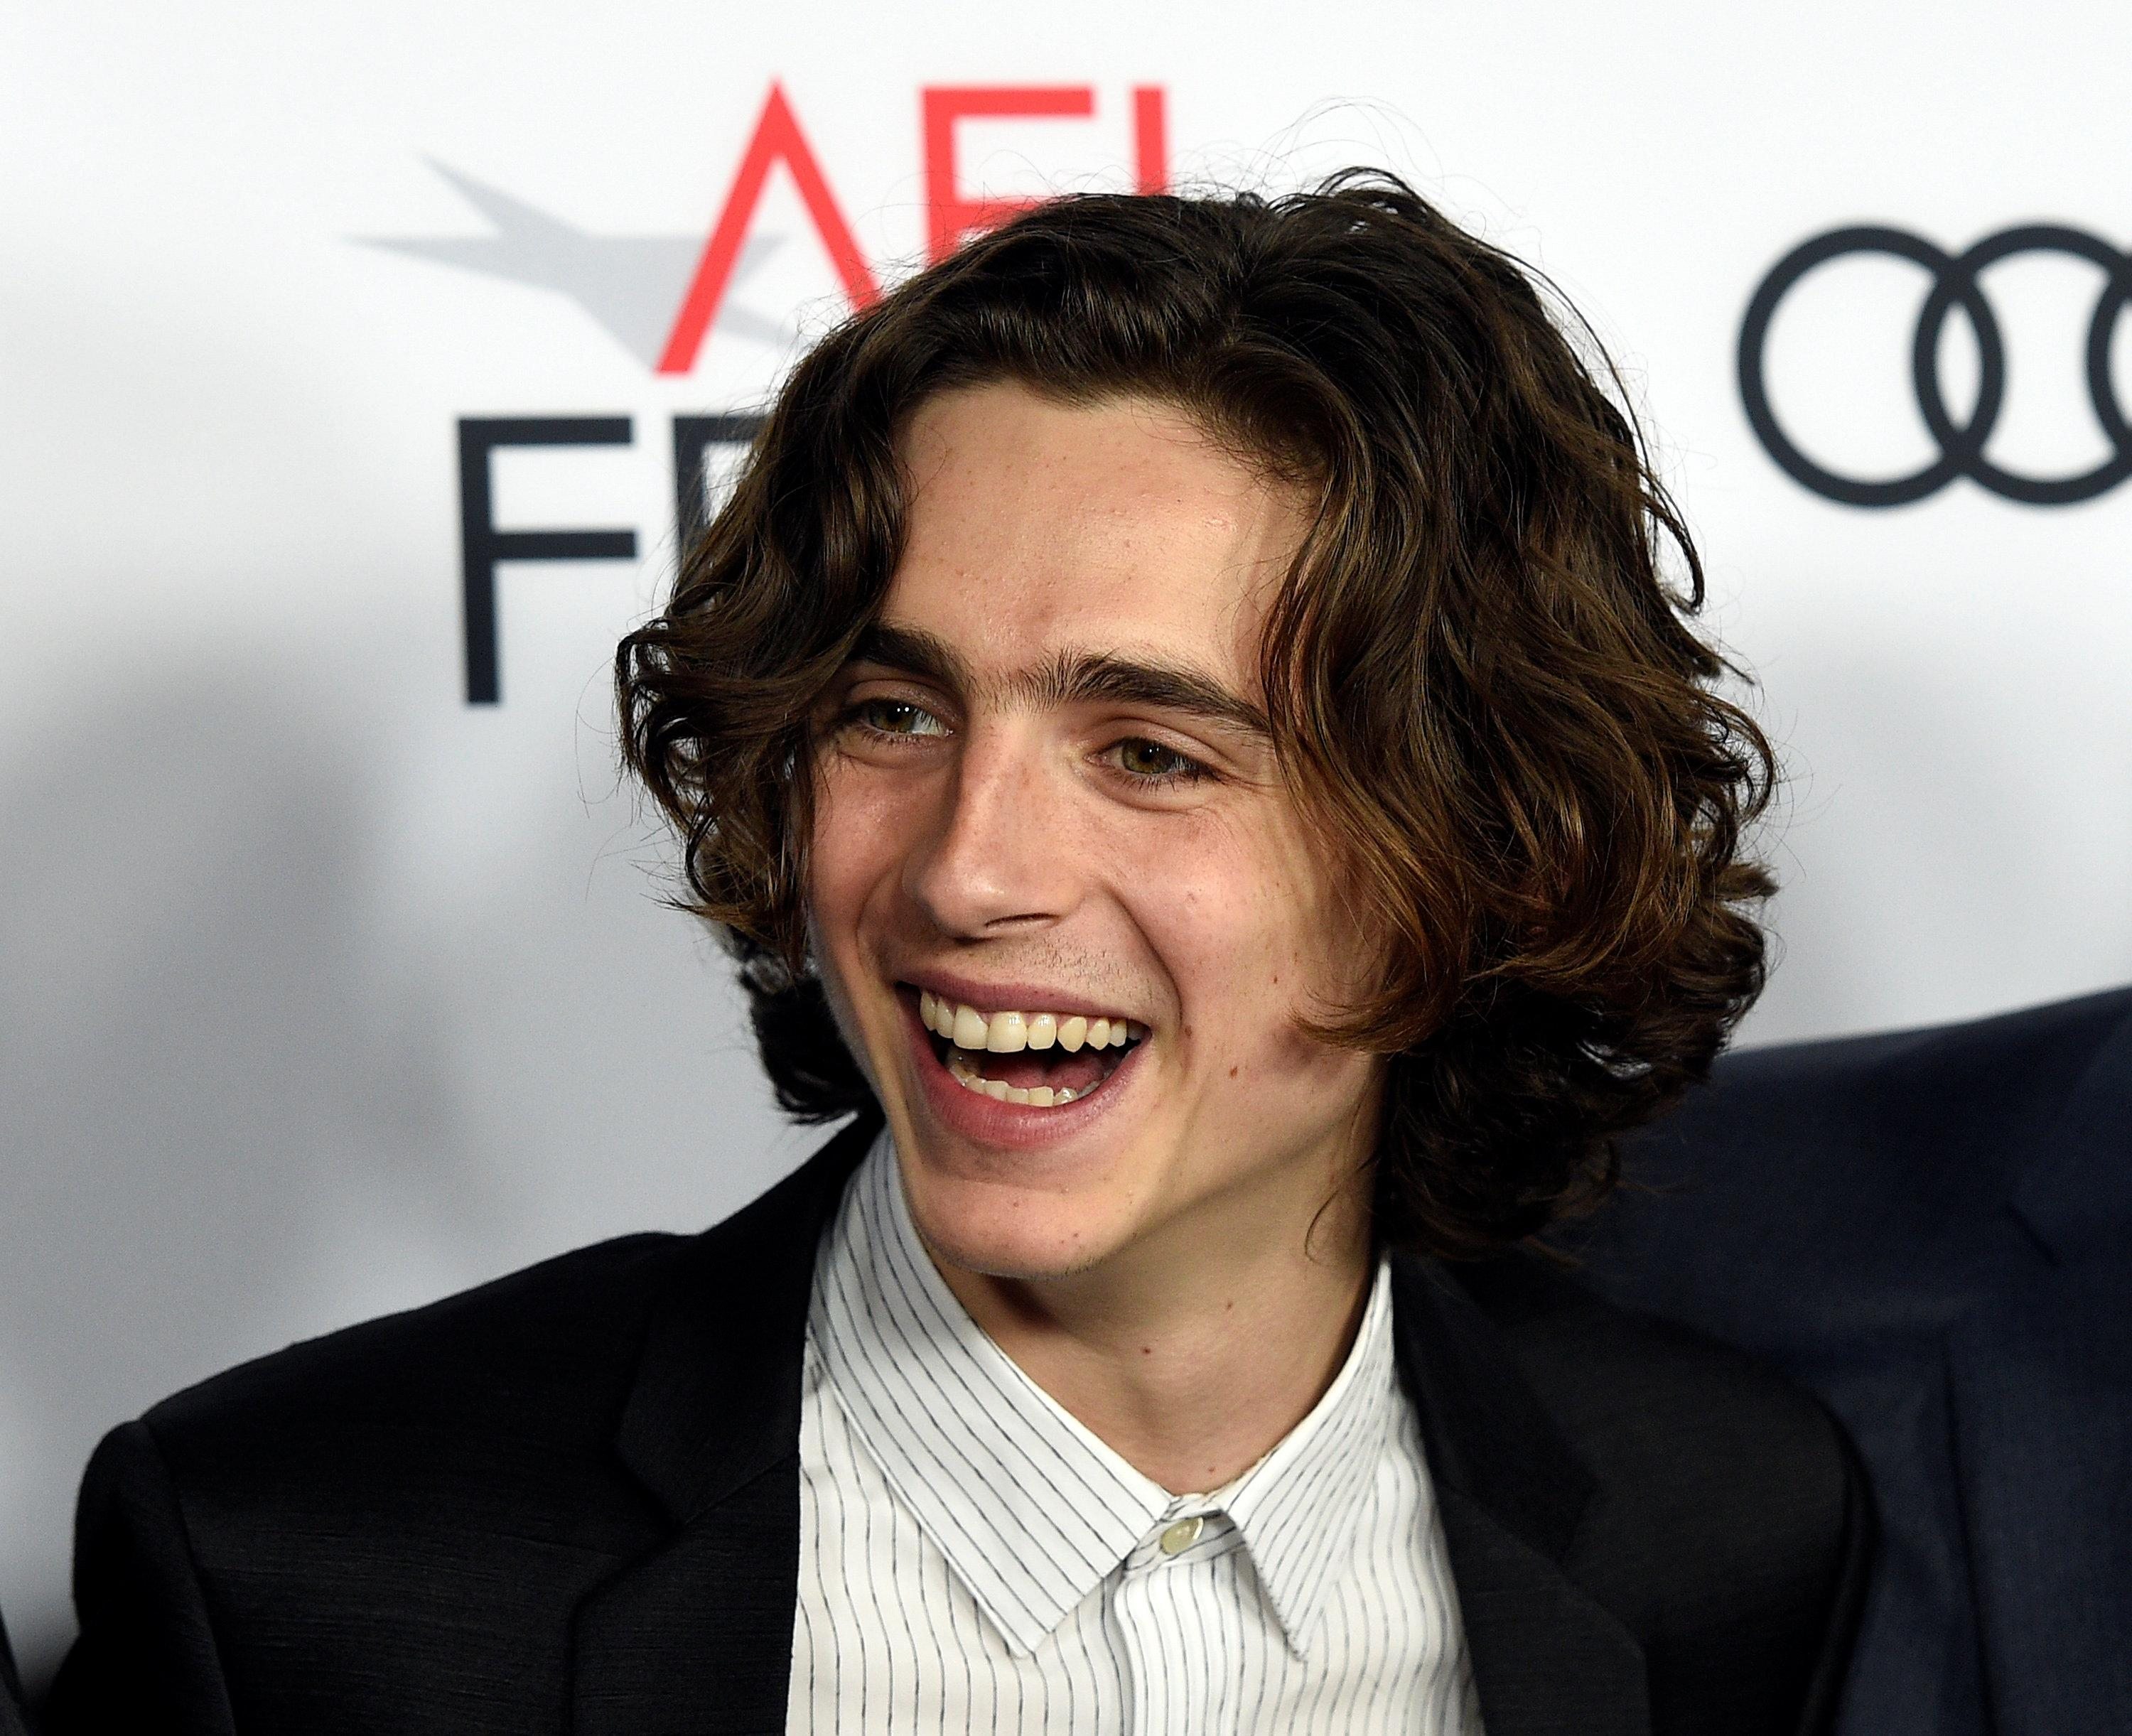 Cast member Timothee Chalamet attends the premiere of